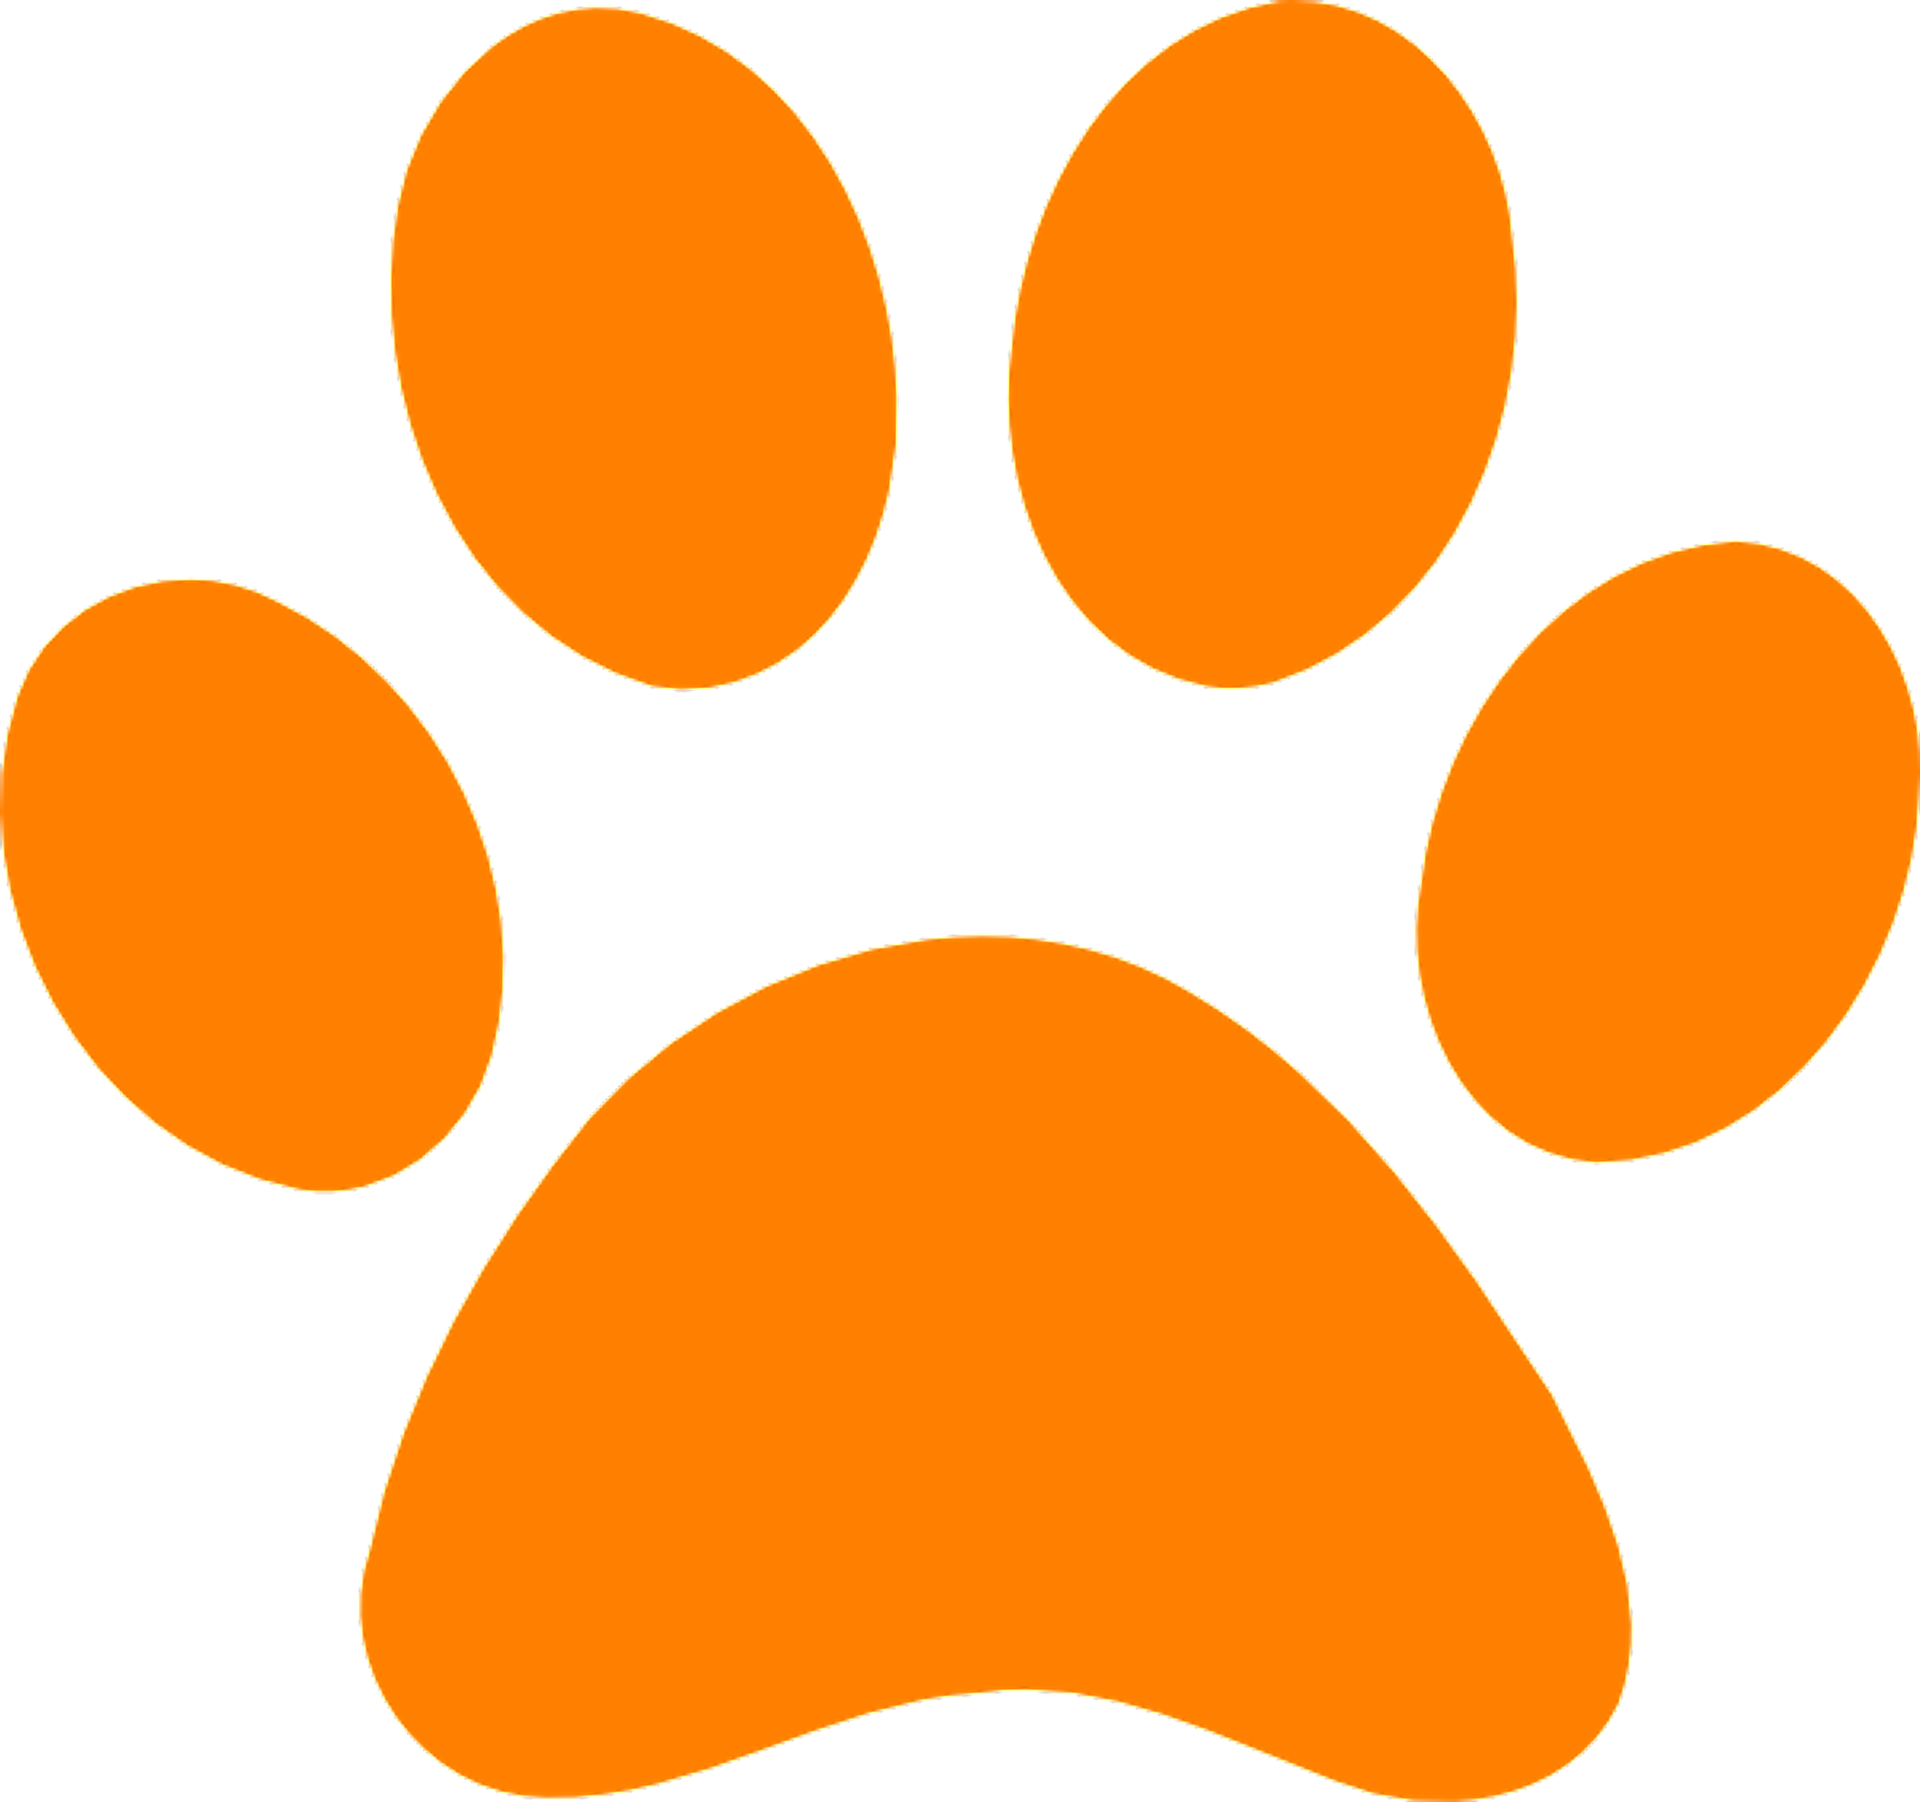 Dog computer icons clip. Fruits clipart paw paw